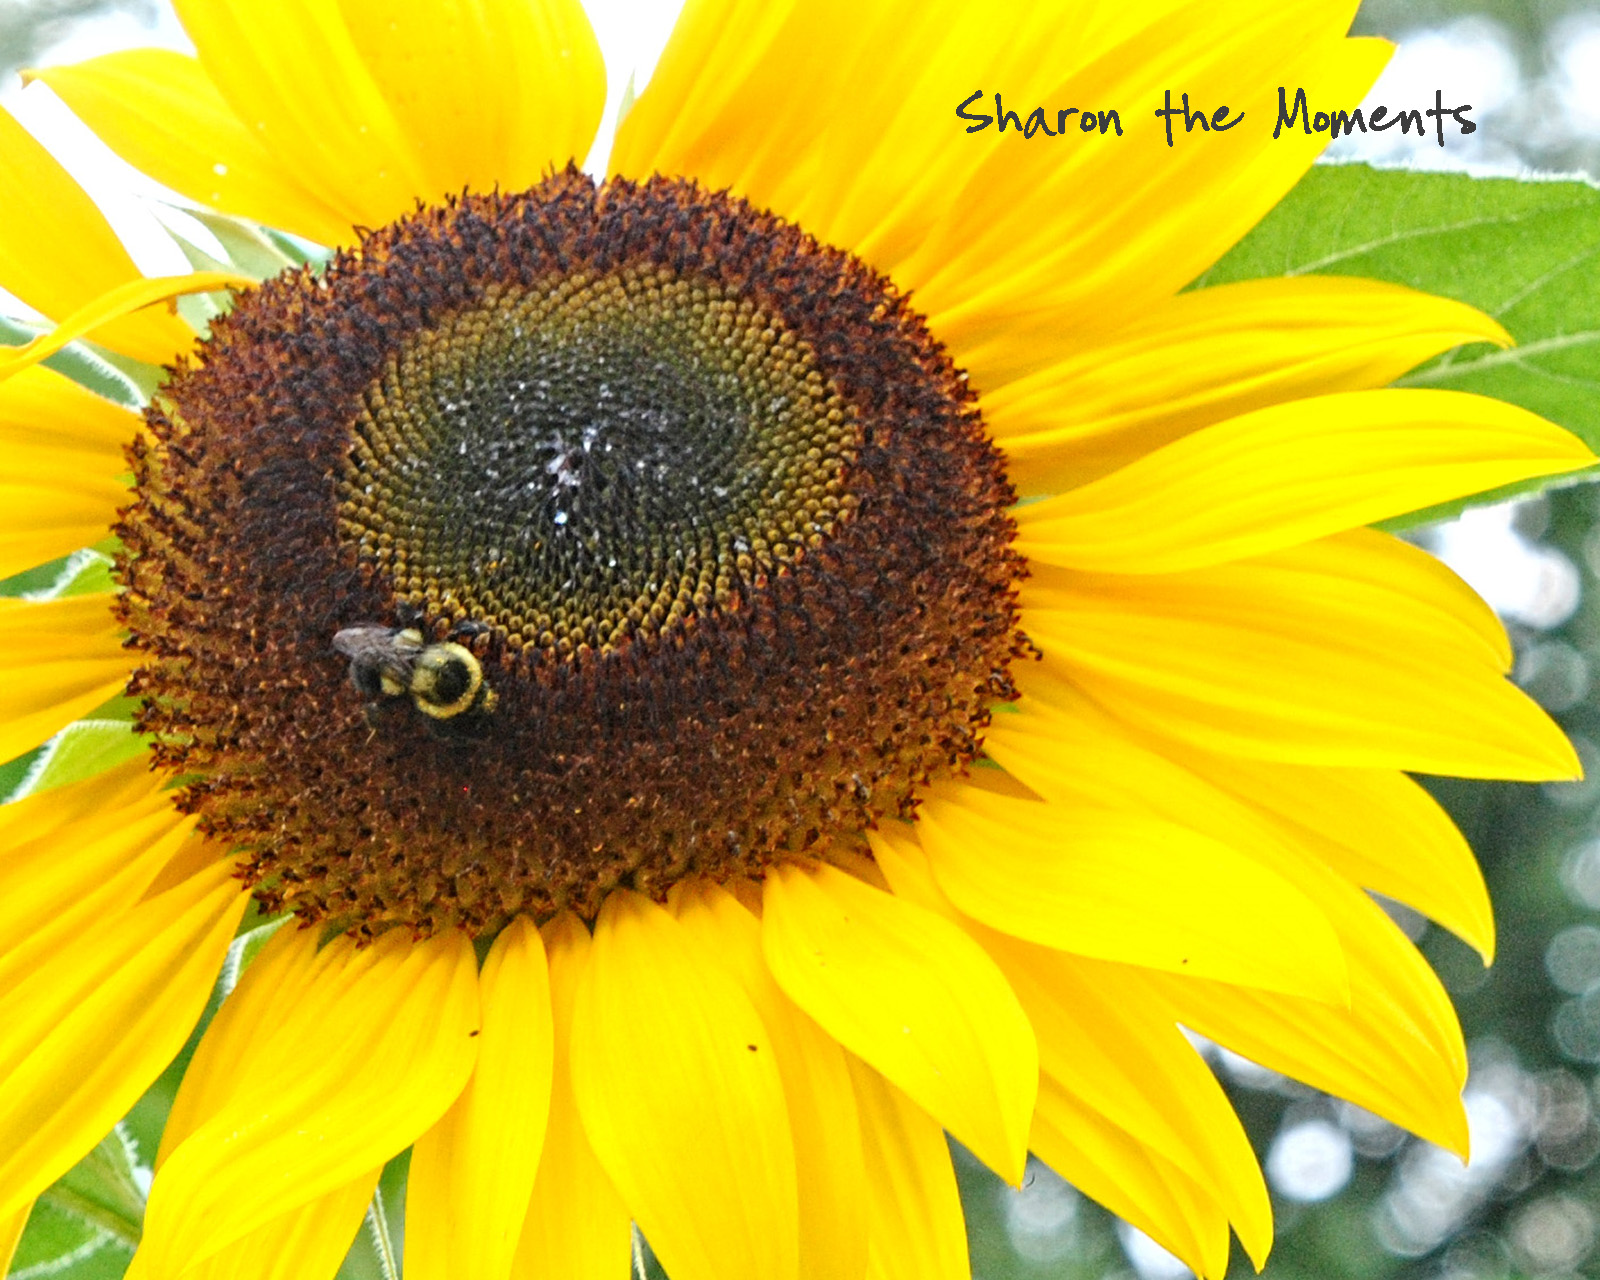 Favorite Photo Friday Summer Sunflowers|Sharon the Moments blog